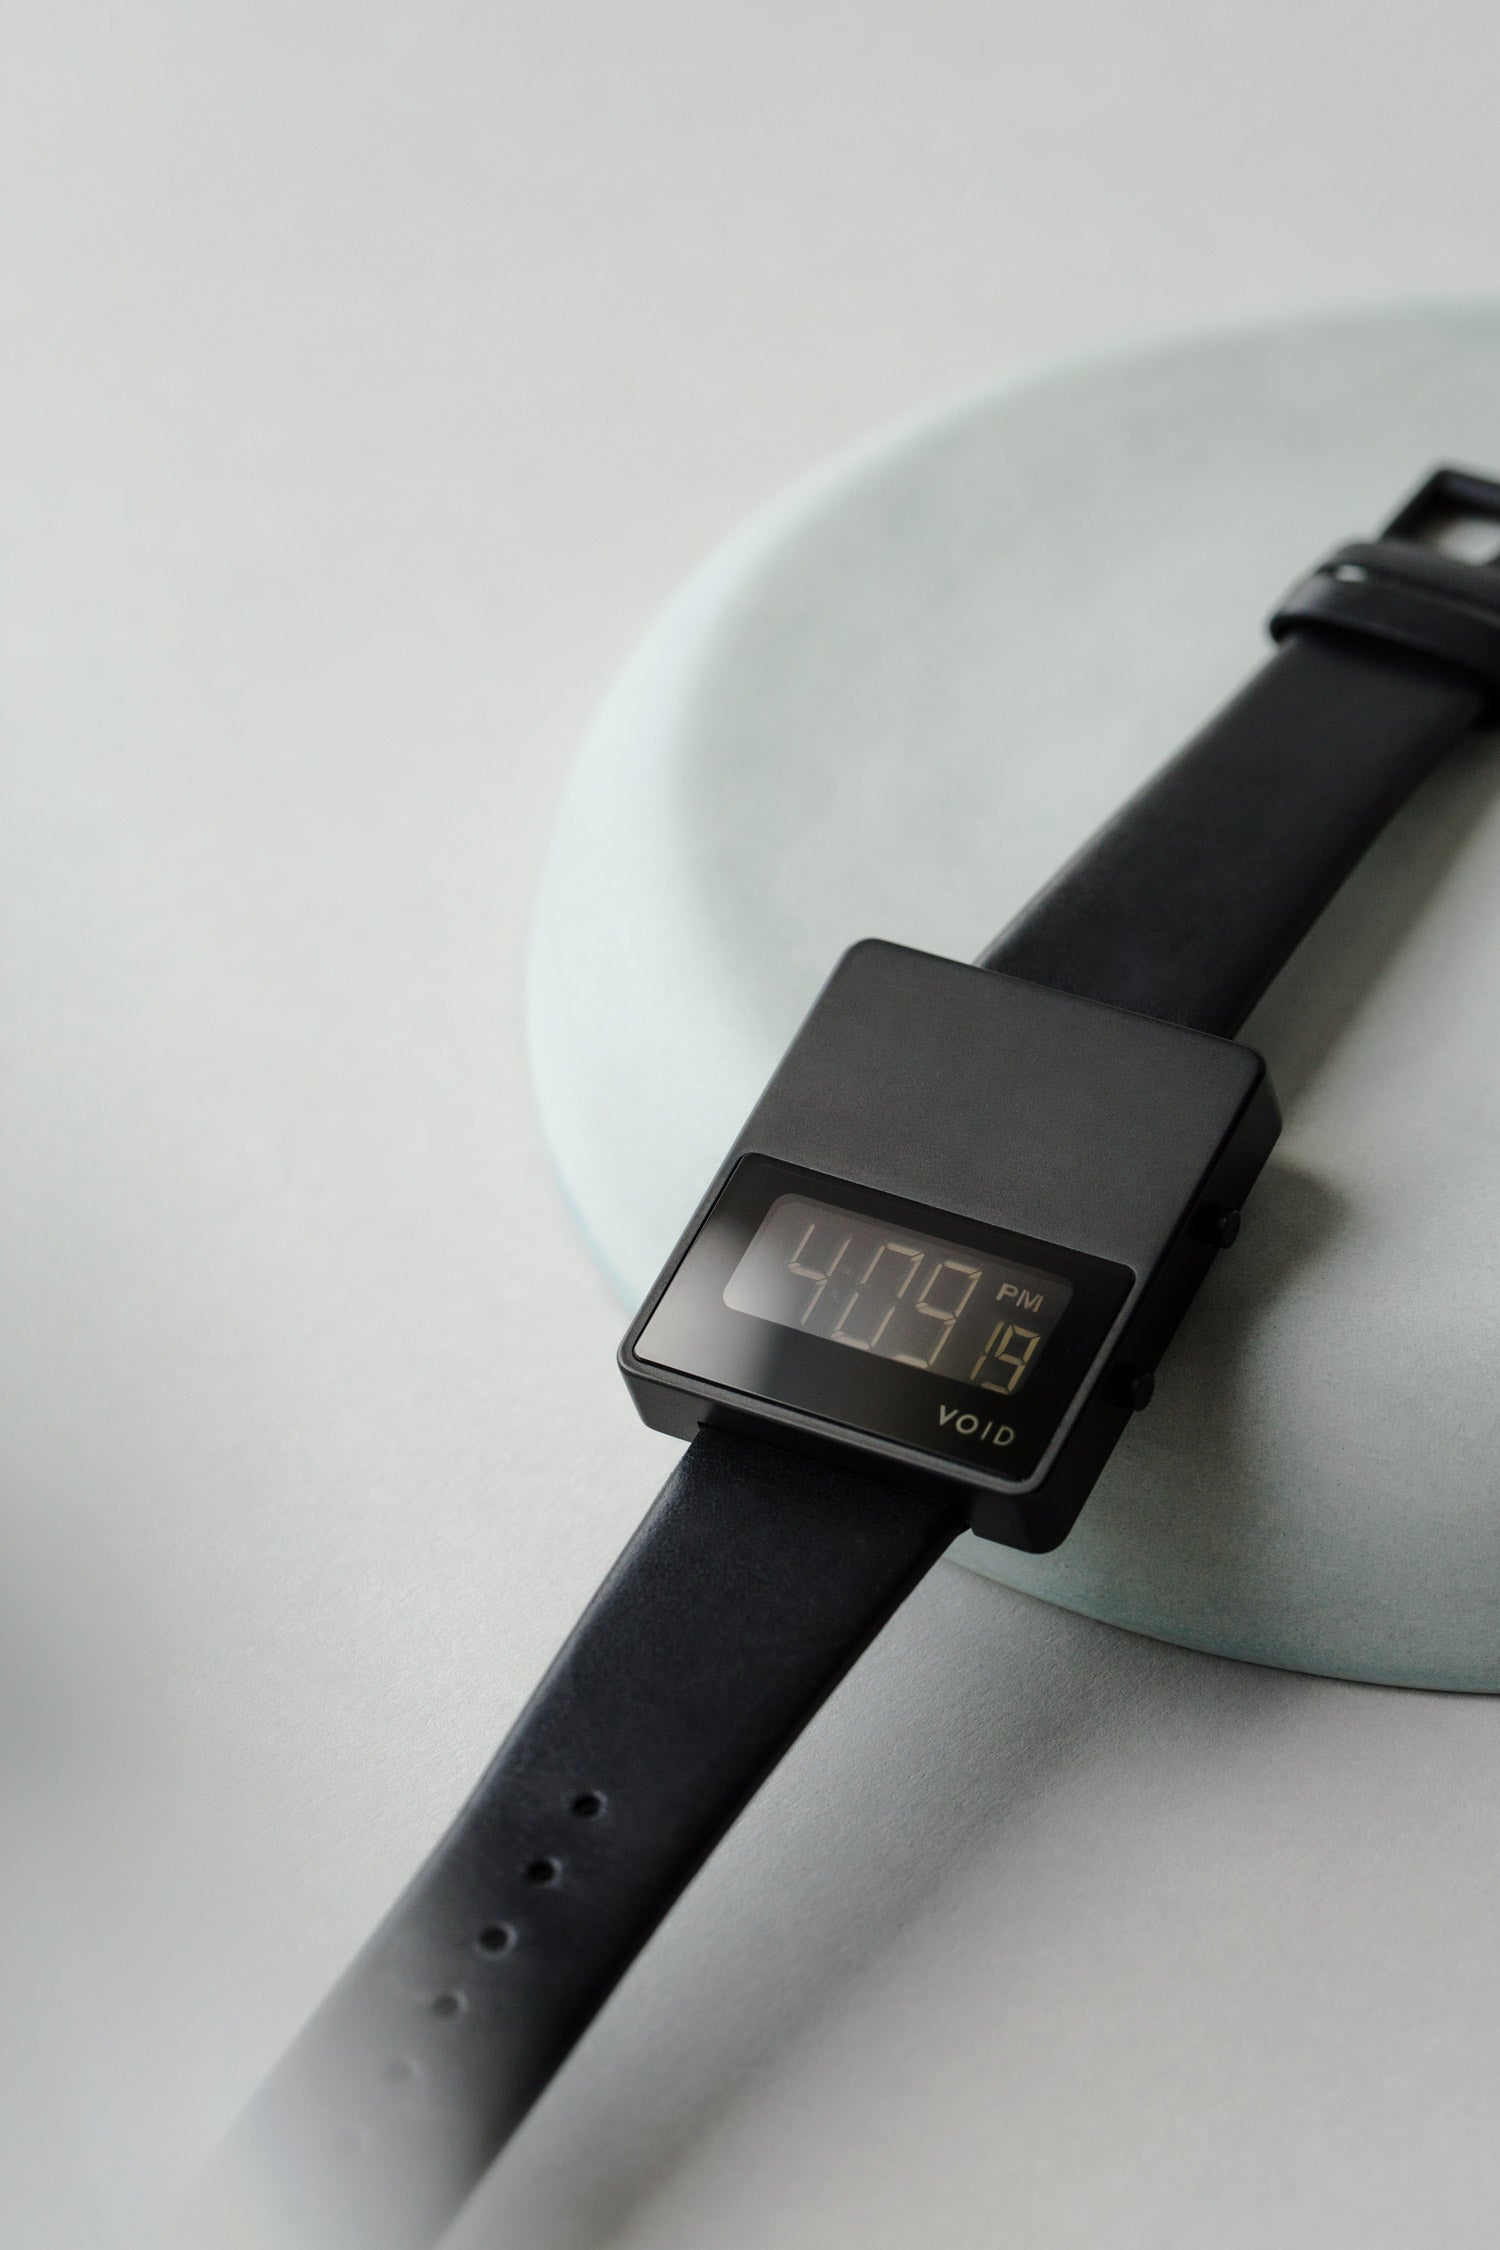 VOID Watches's iconic square watch, the V01MKII by Swedish Designer David Ericsson.